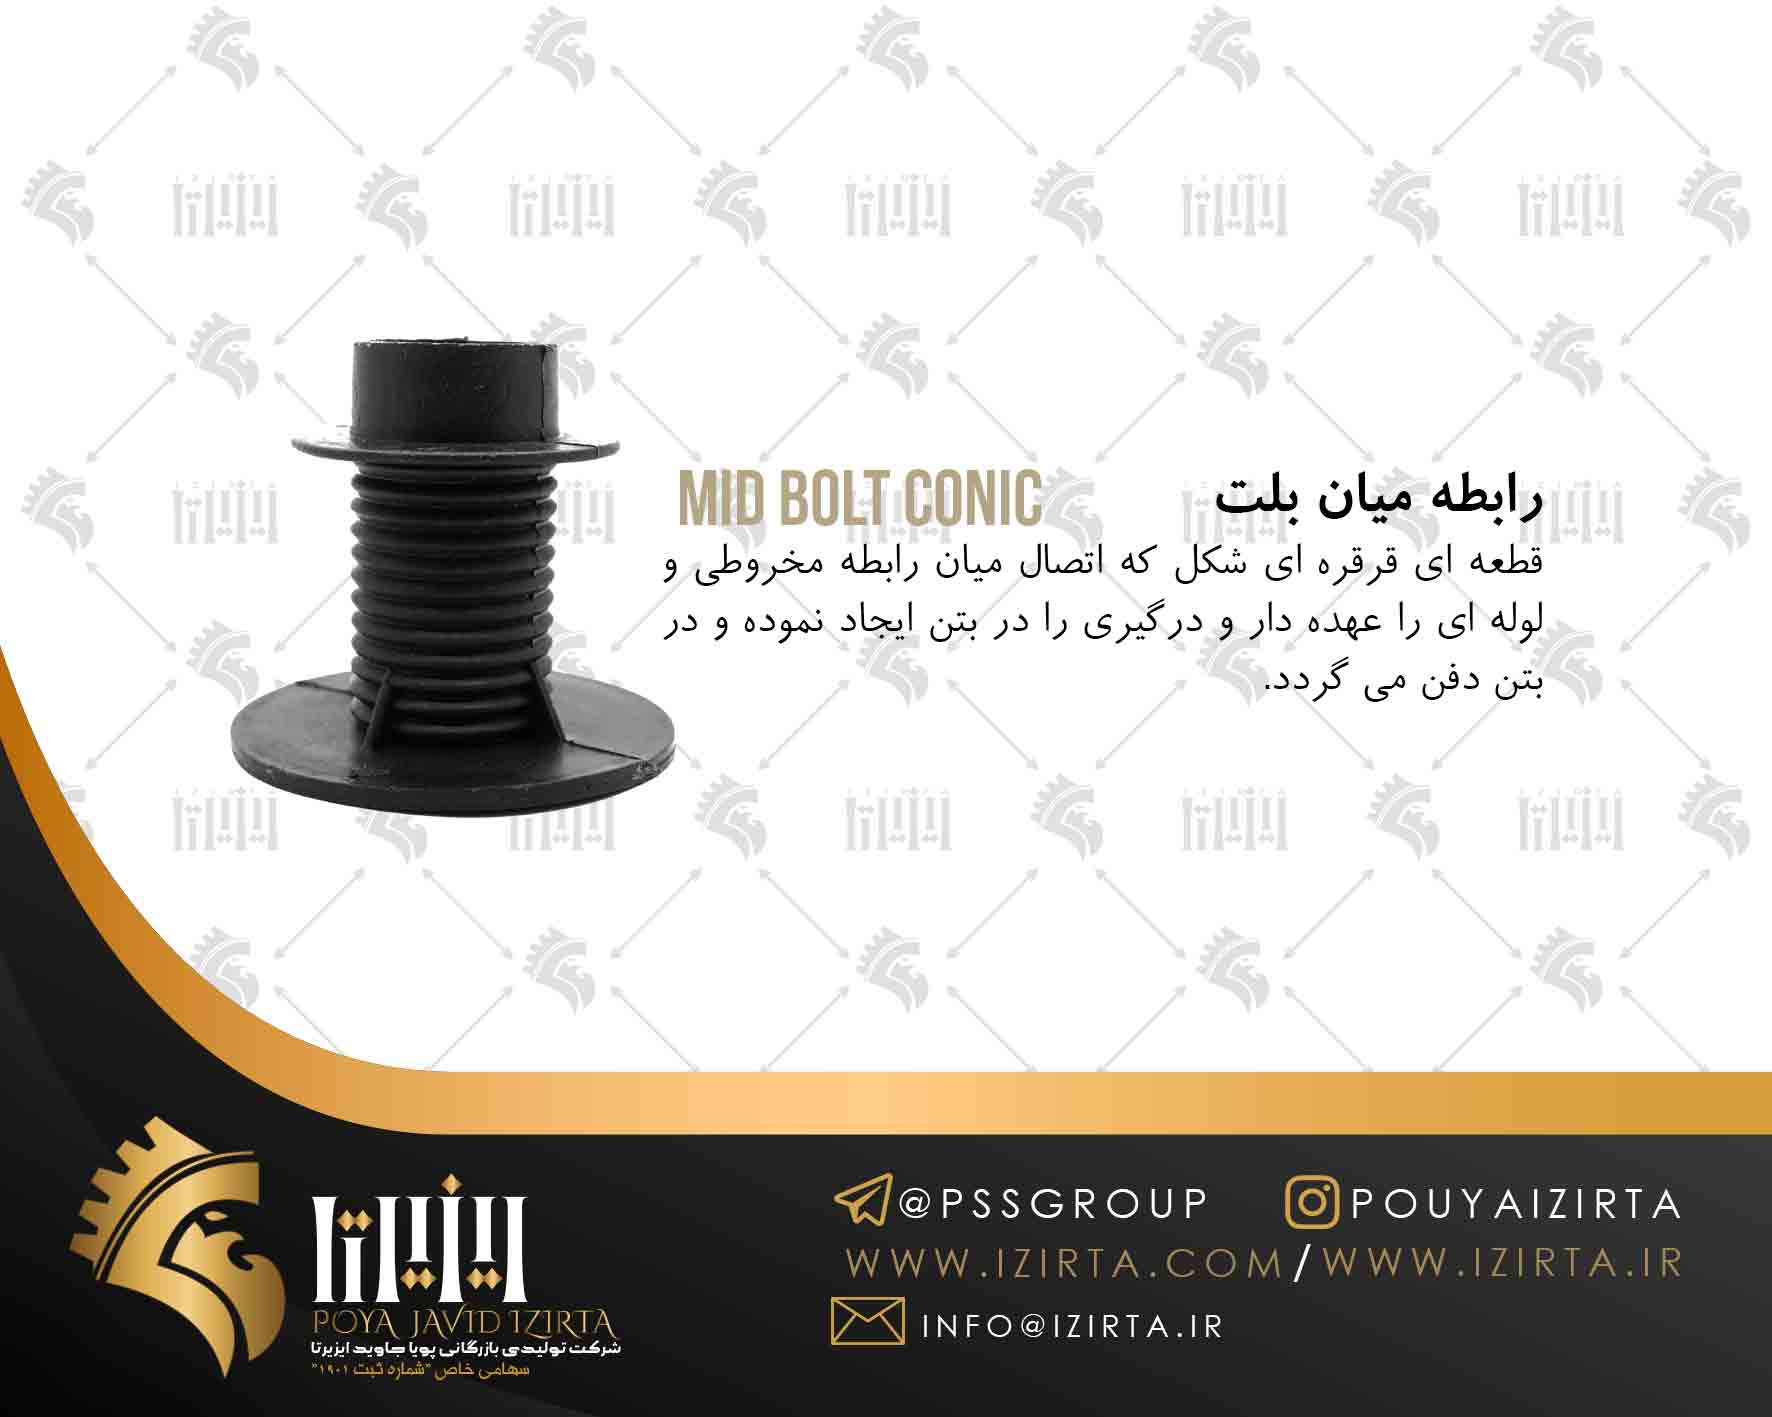 رابط ميان بلت ( Mid bolt conic )